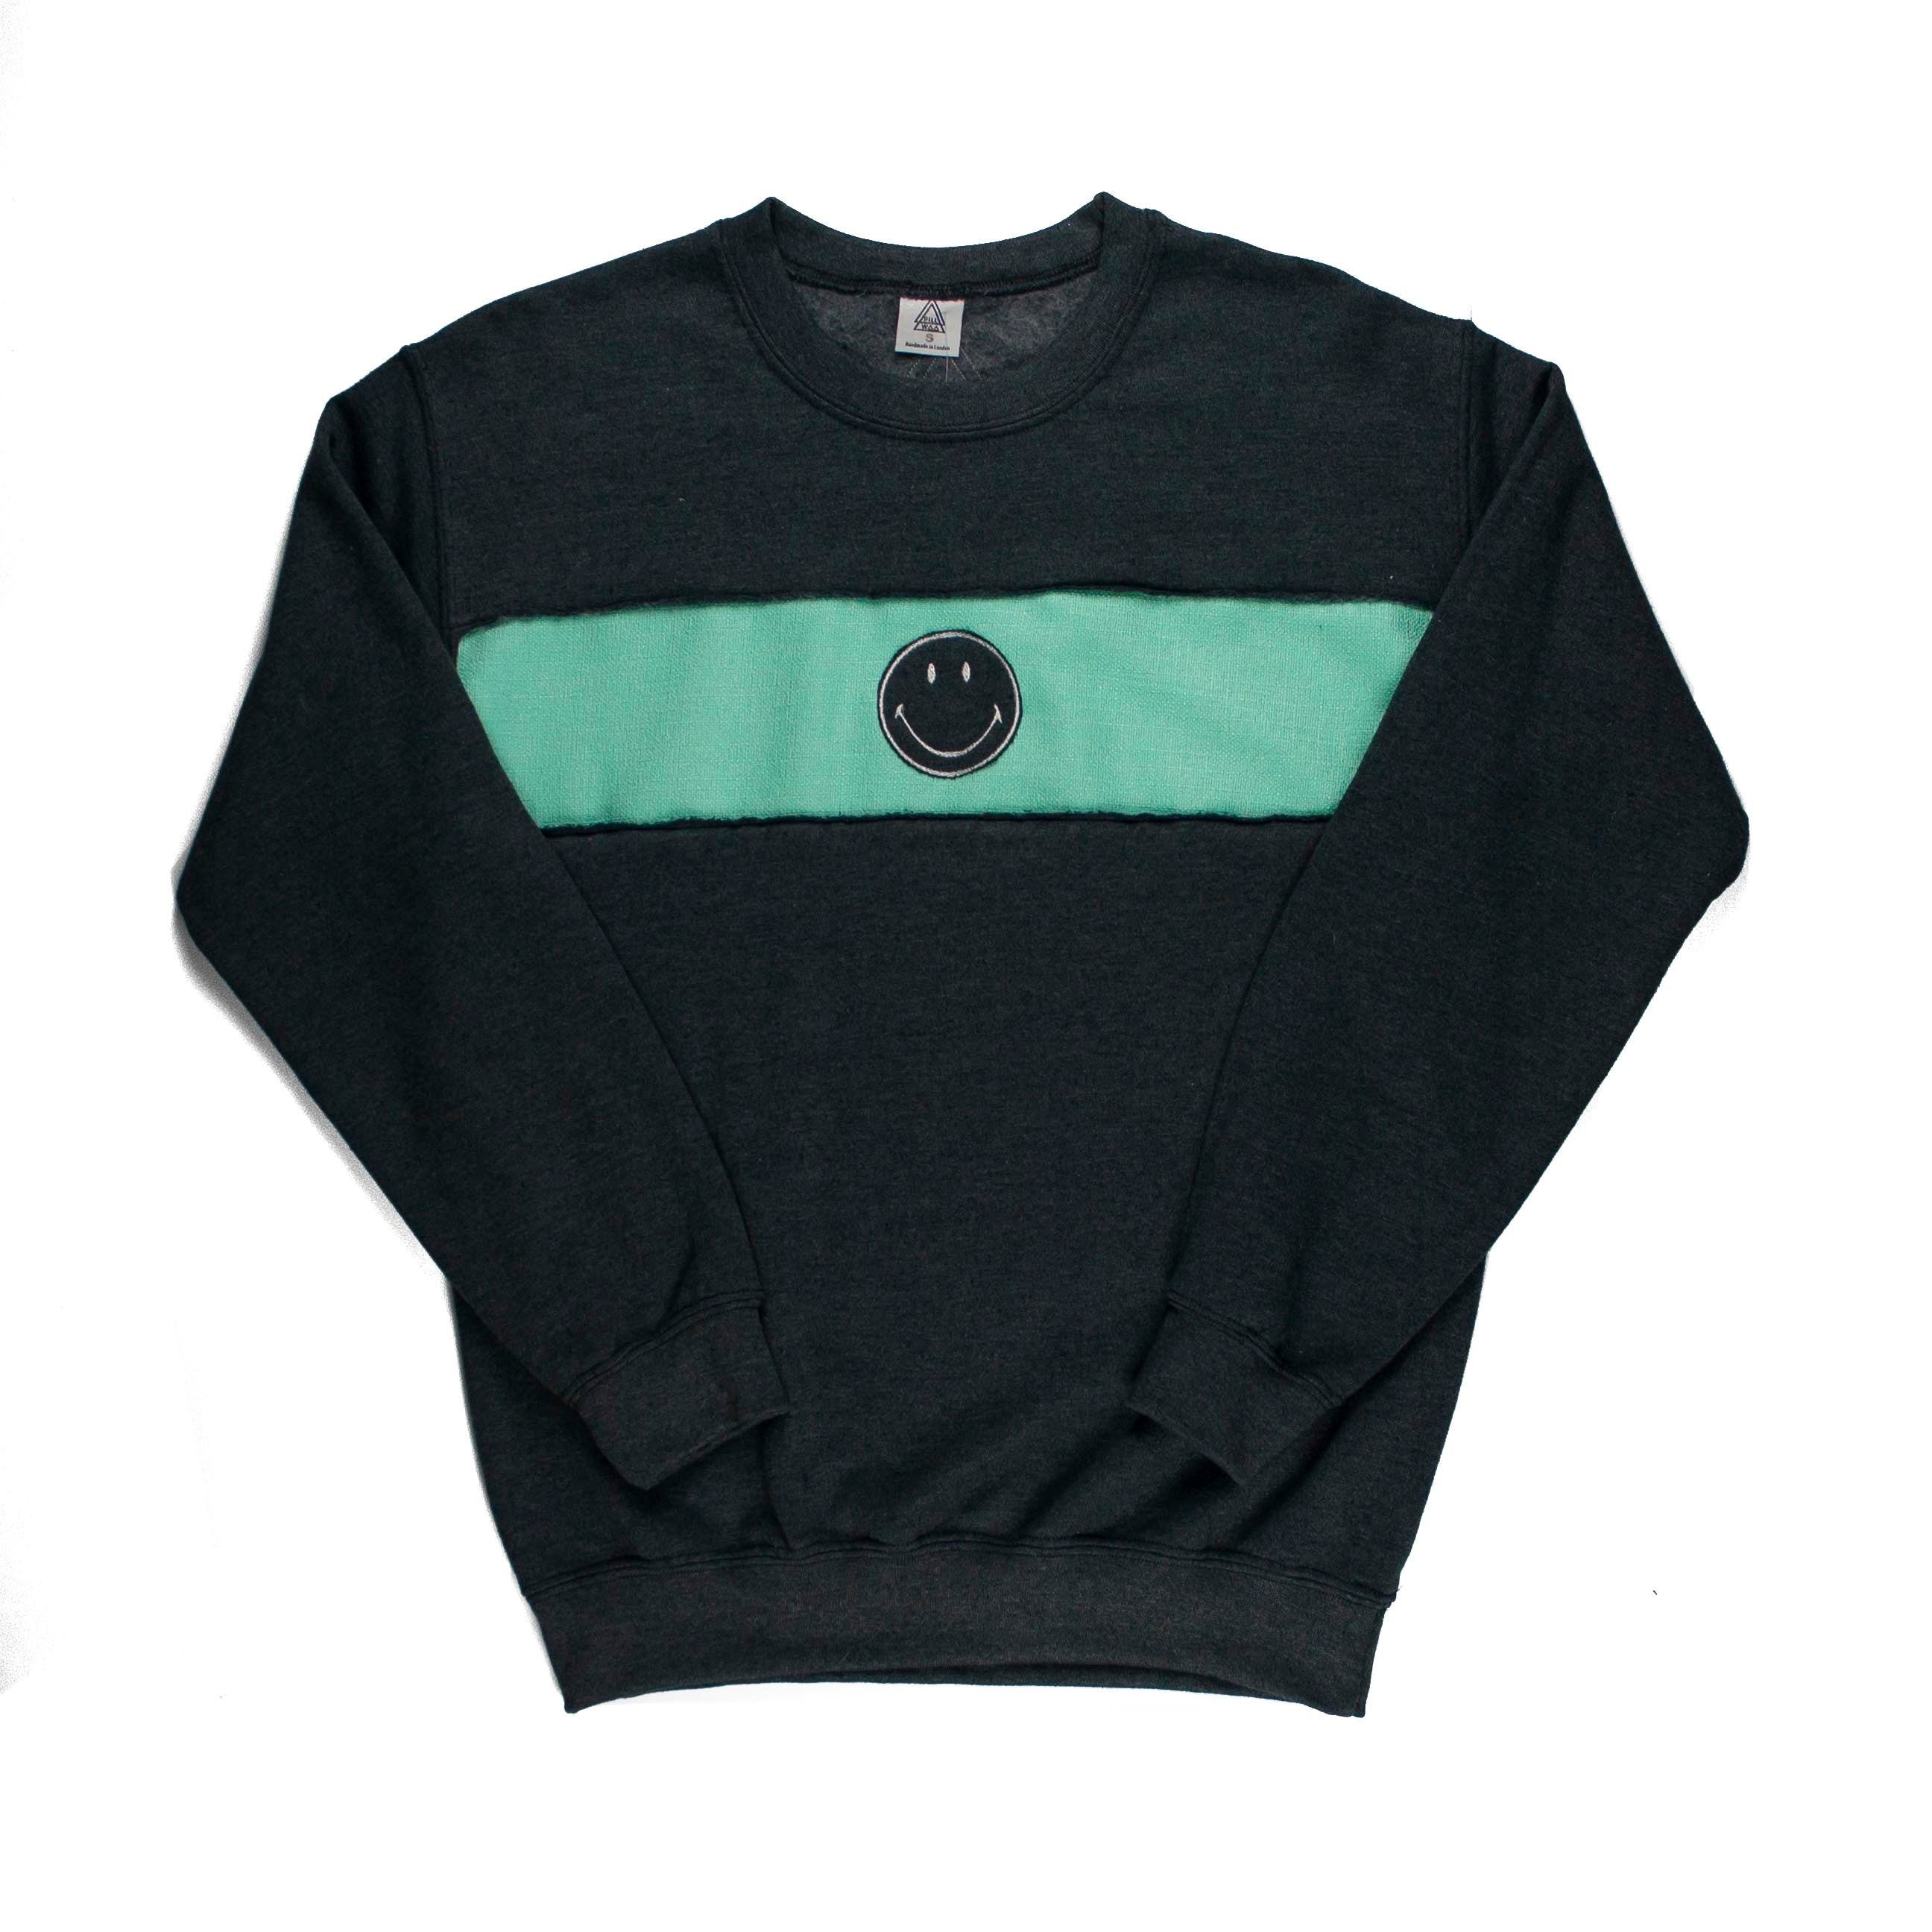 Smiley Face B3 Band Sweatshirt (Grey, Mint)